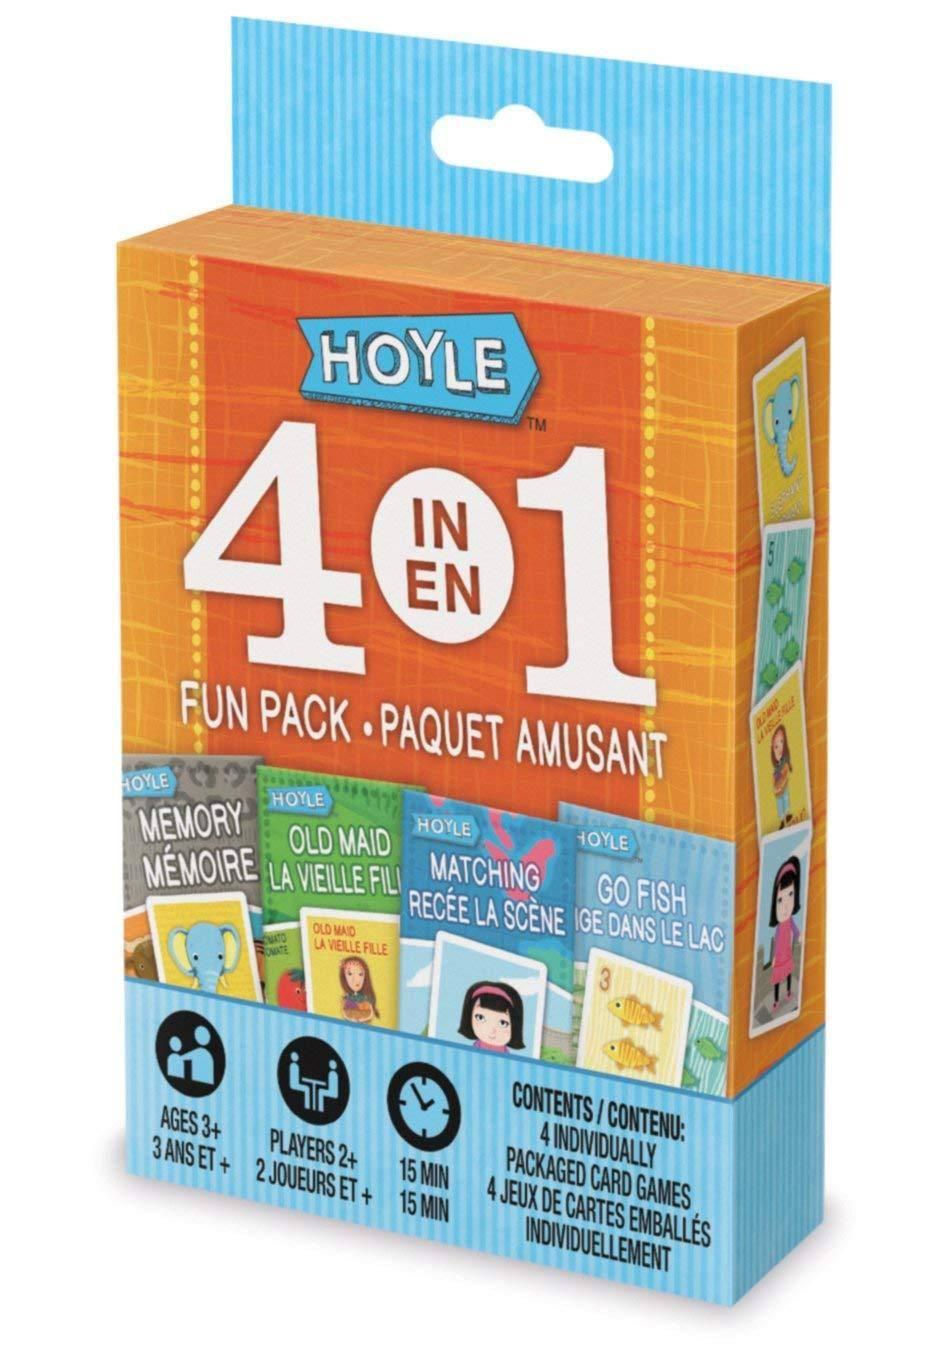 Hoyle 4-in-1 Fun Pack Classic Card Games